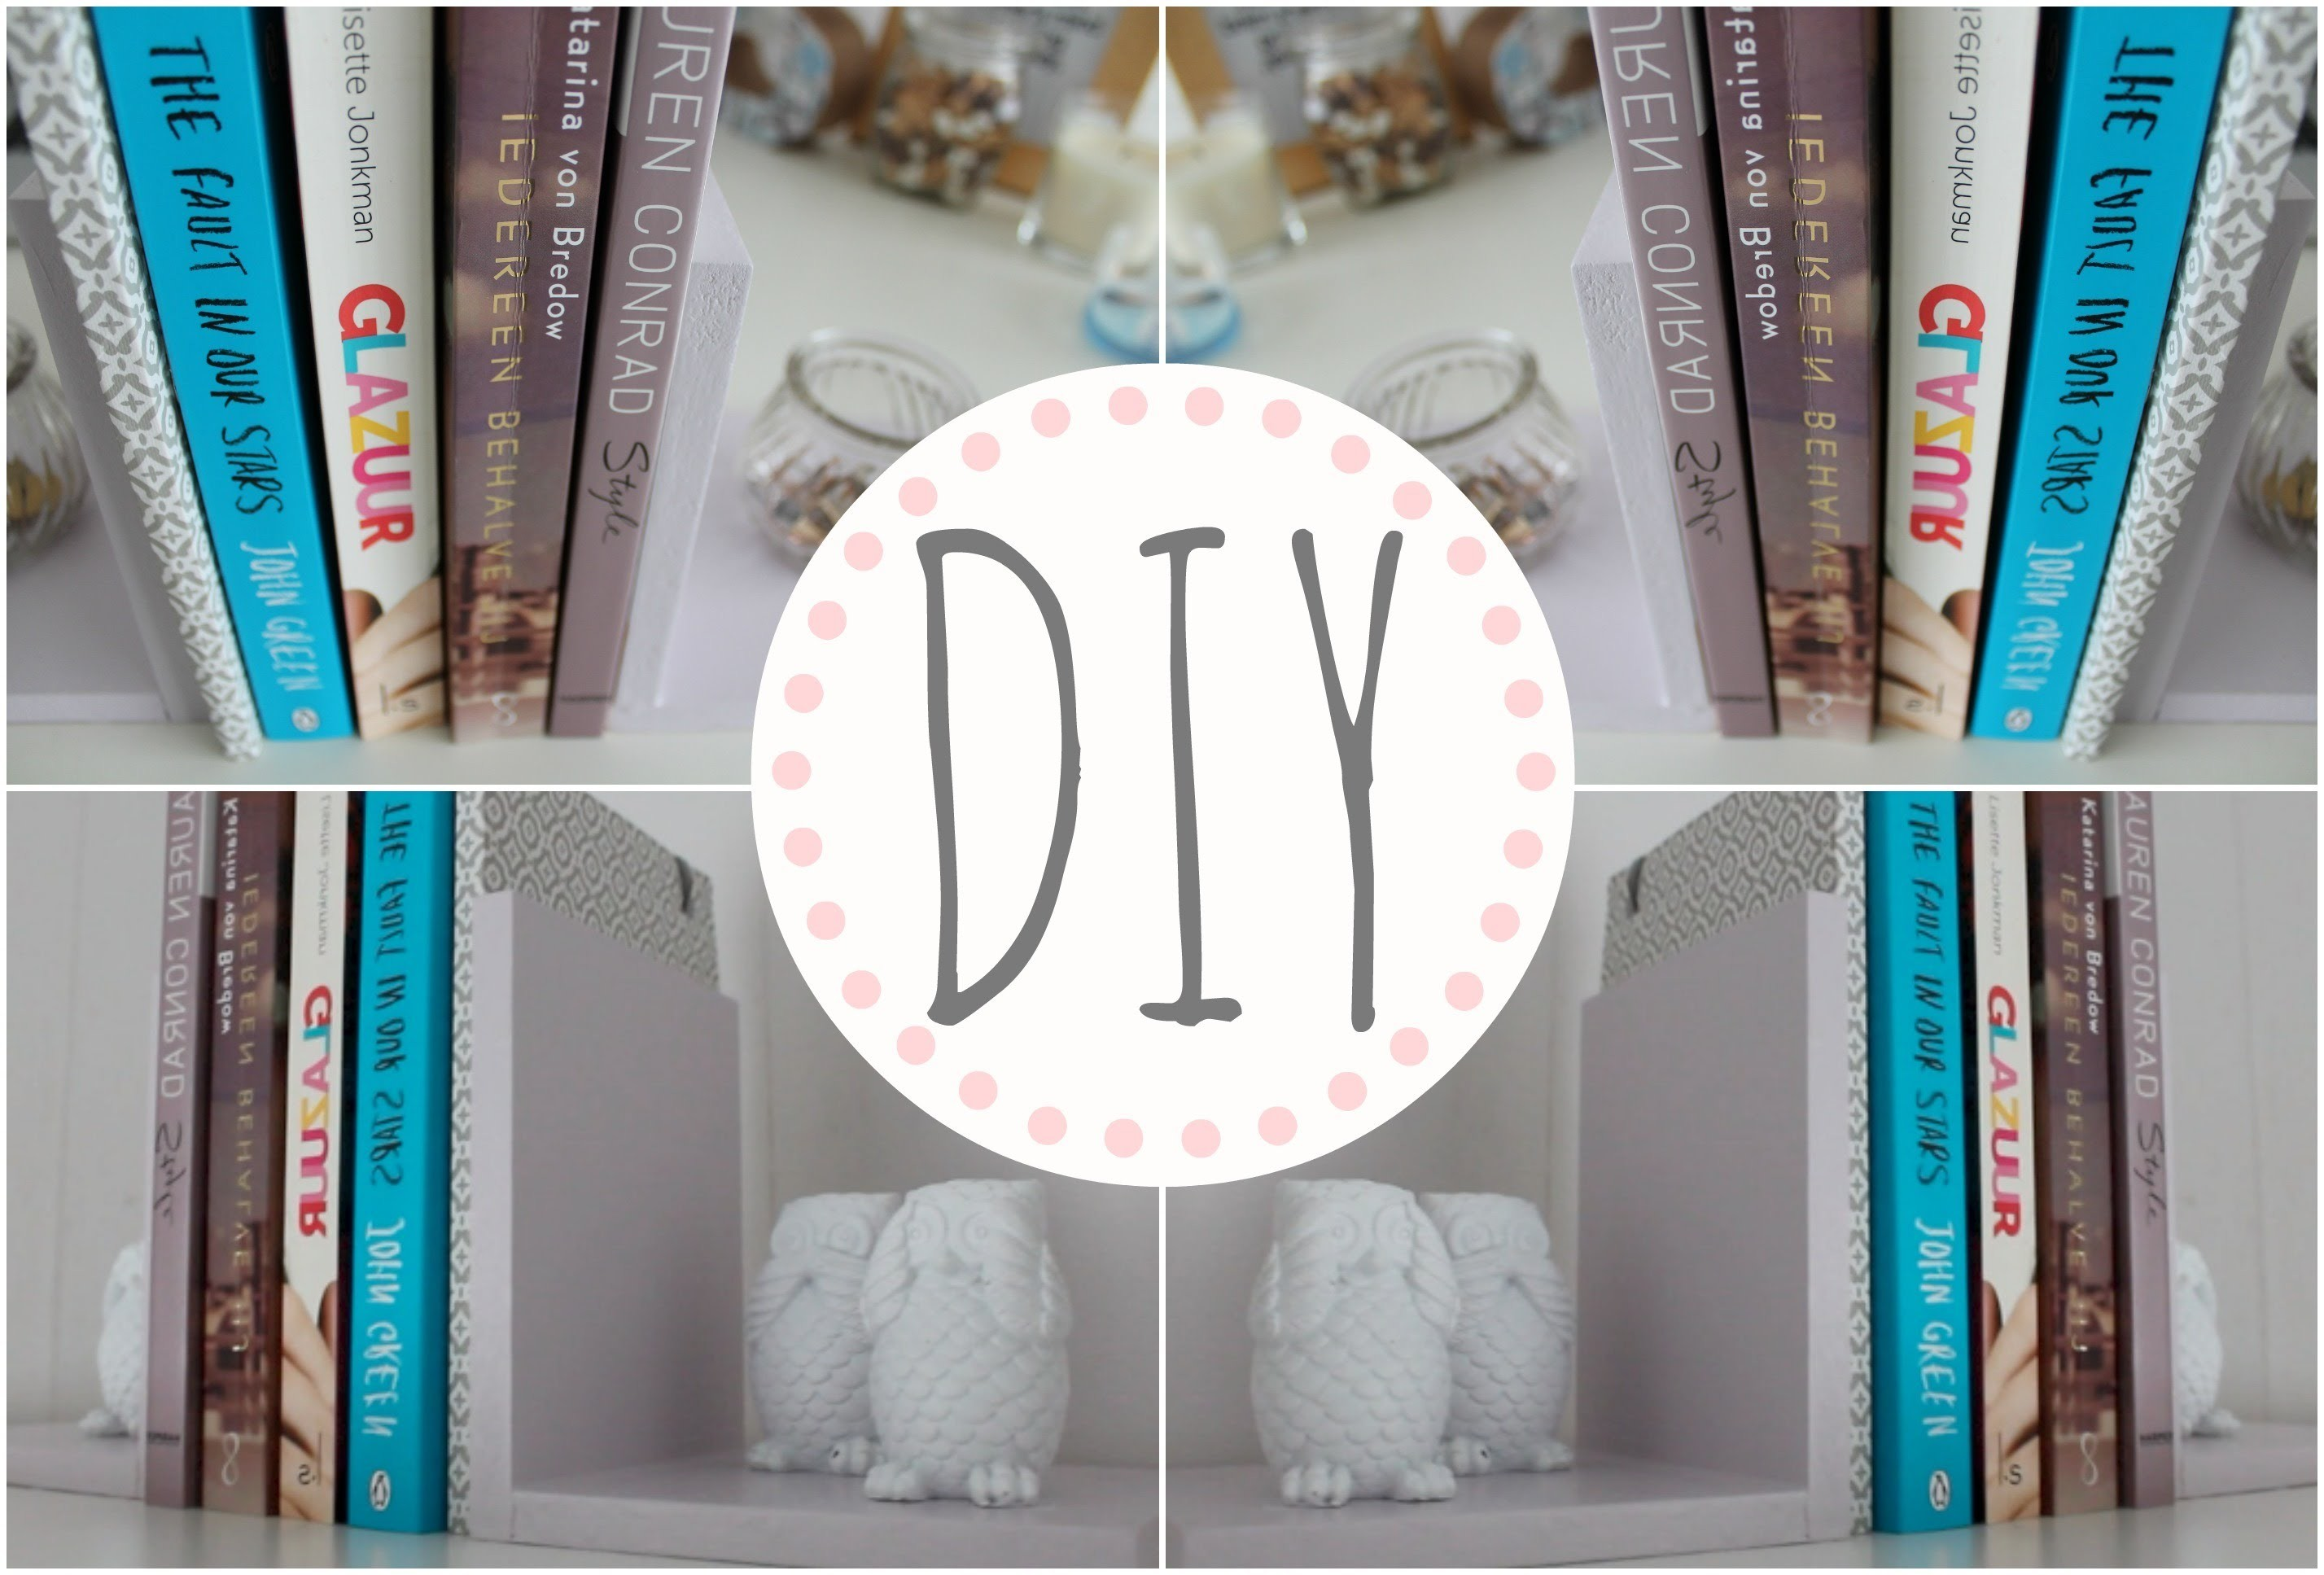 Diy leuke boekensteunen kamer decoratie my crafts and diy projects - Volwassen kamer decoratie ideeen ...